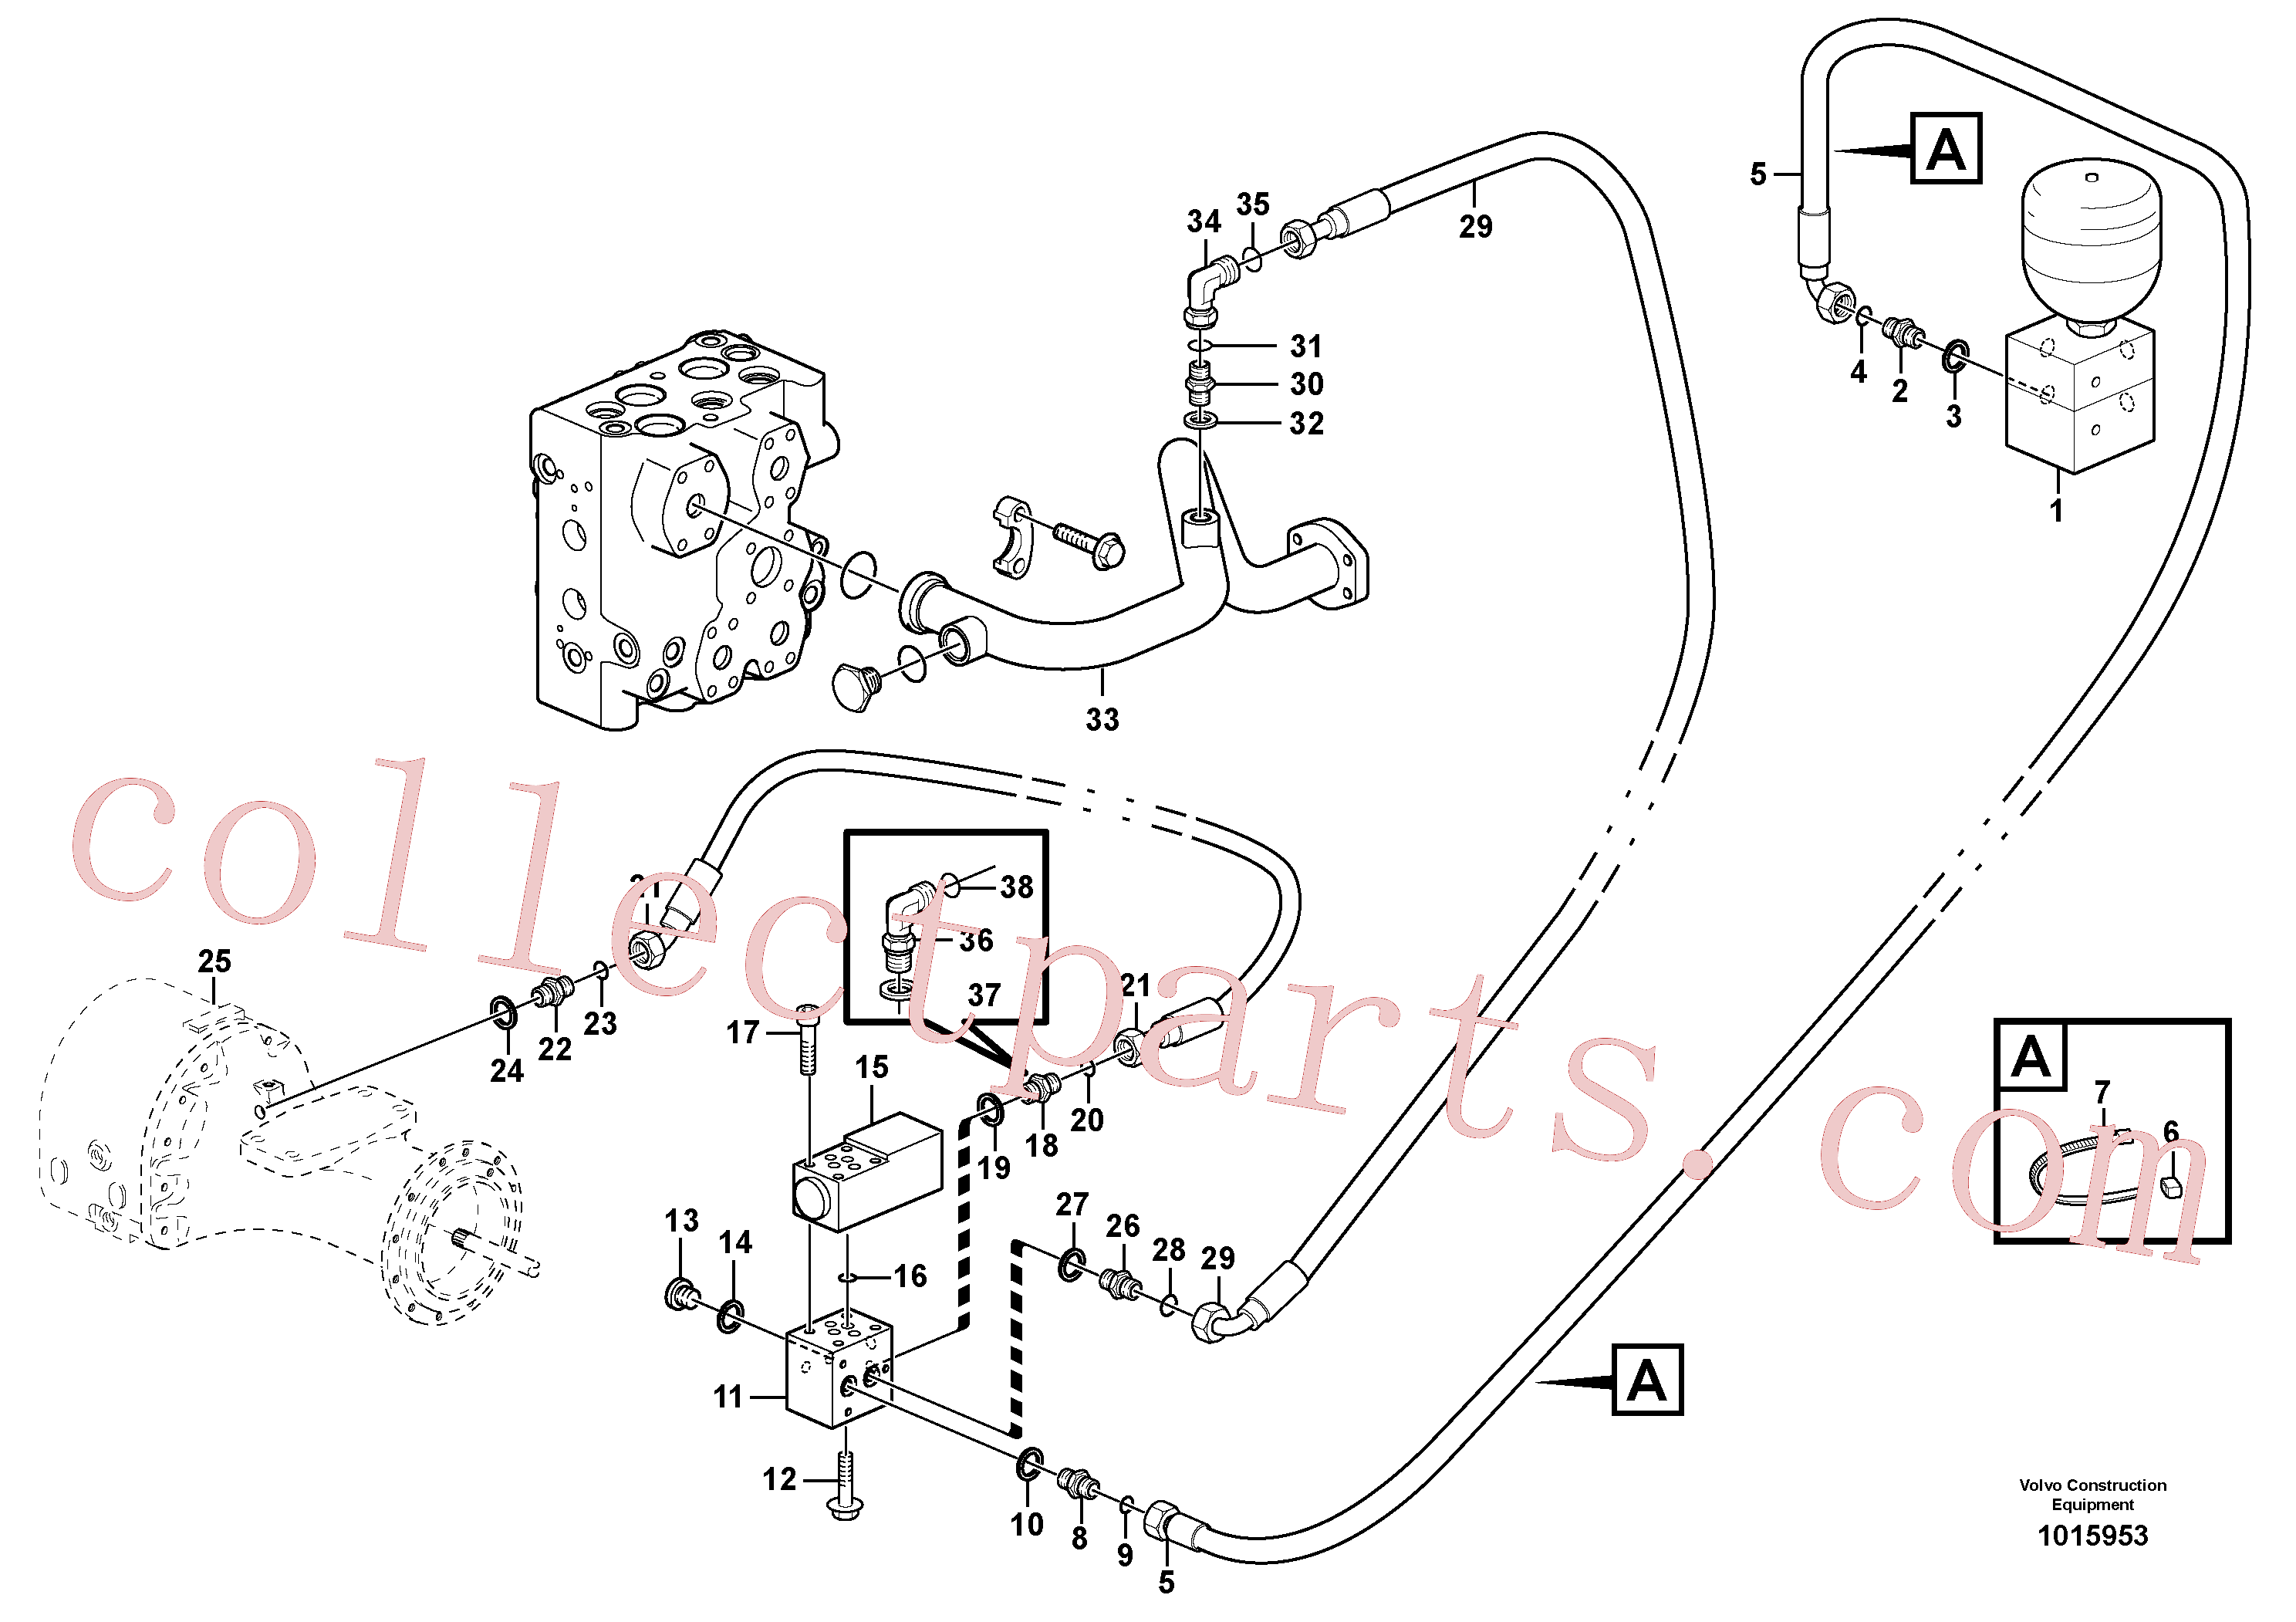 VOE11172988 for Volvo Differential lock, hydraulic line(1015953 assembly)